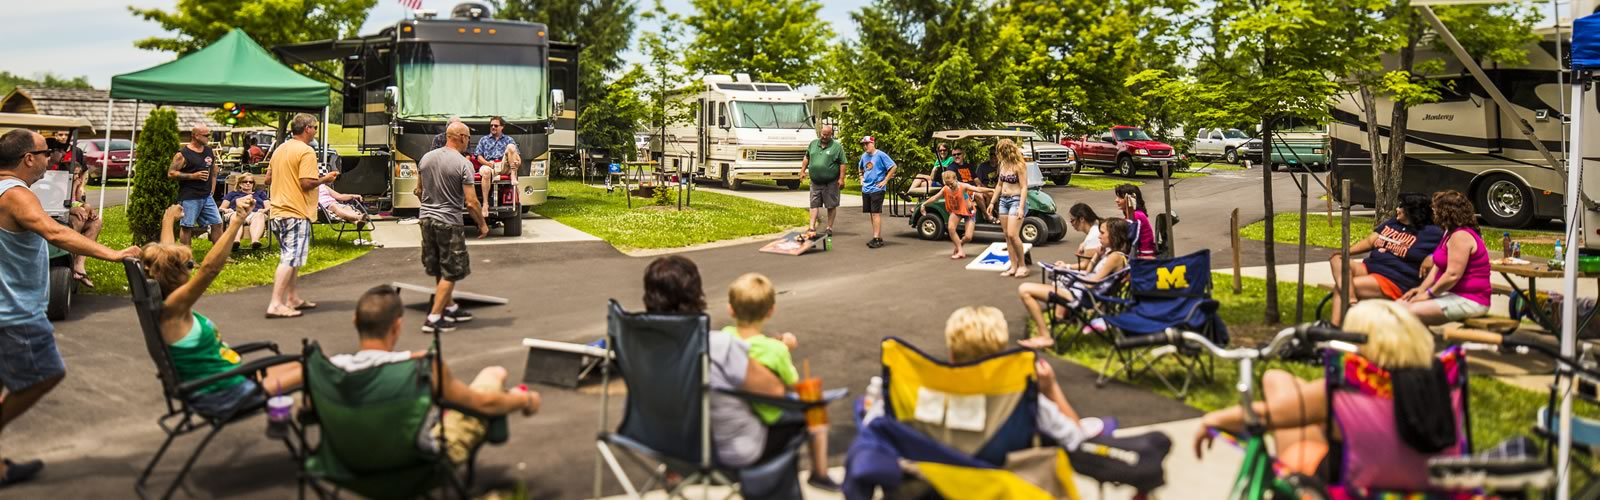 Group Camping RV Sites - Roll Up in Your Rigs and into our RV campsites for Groups. We have 30 and 50 amp service with full hookups on pullthru and back-in sites